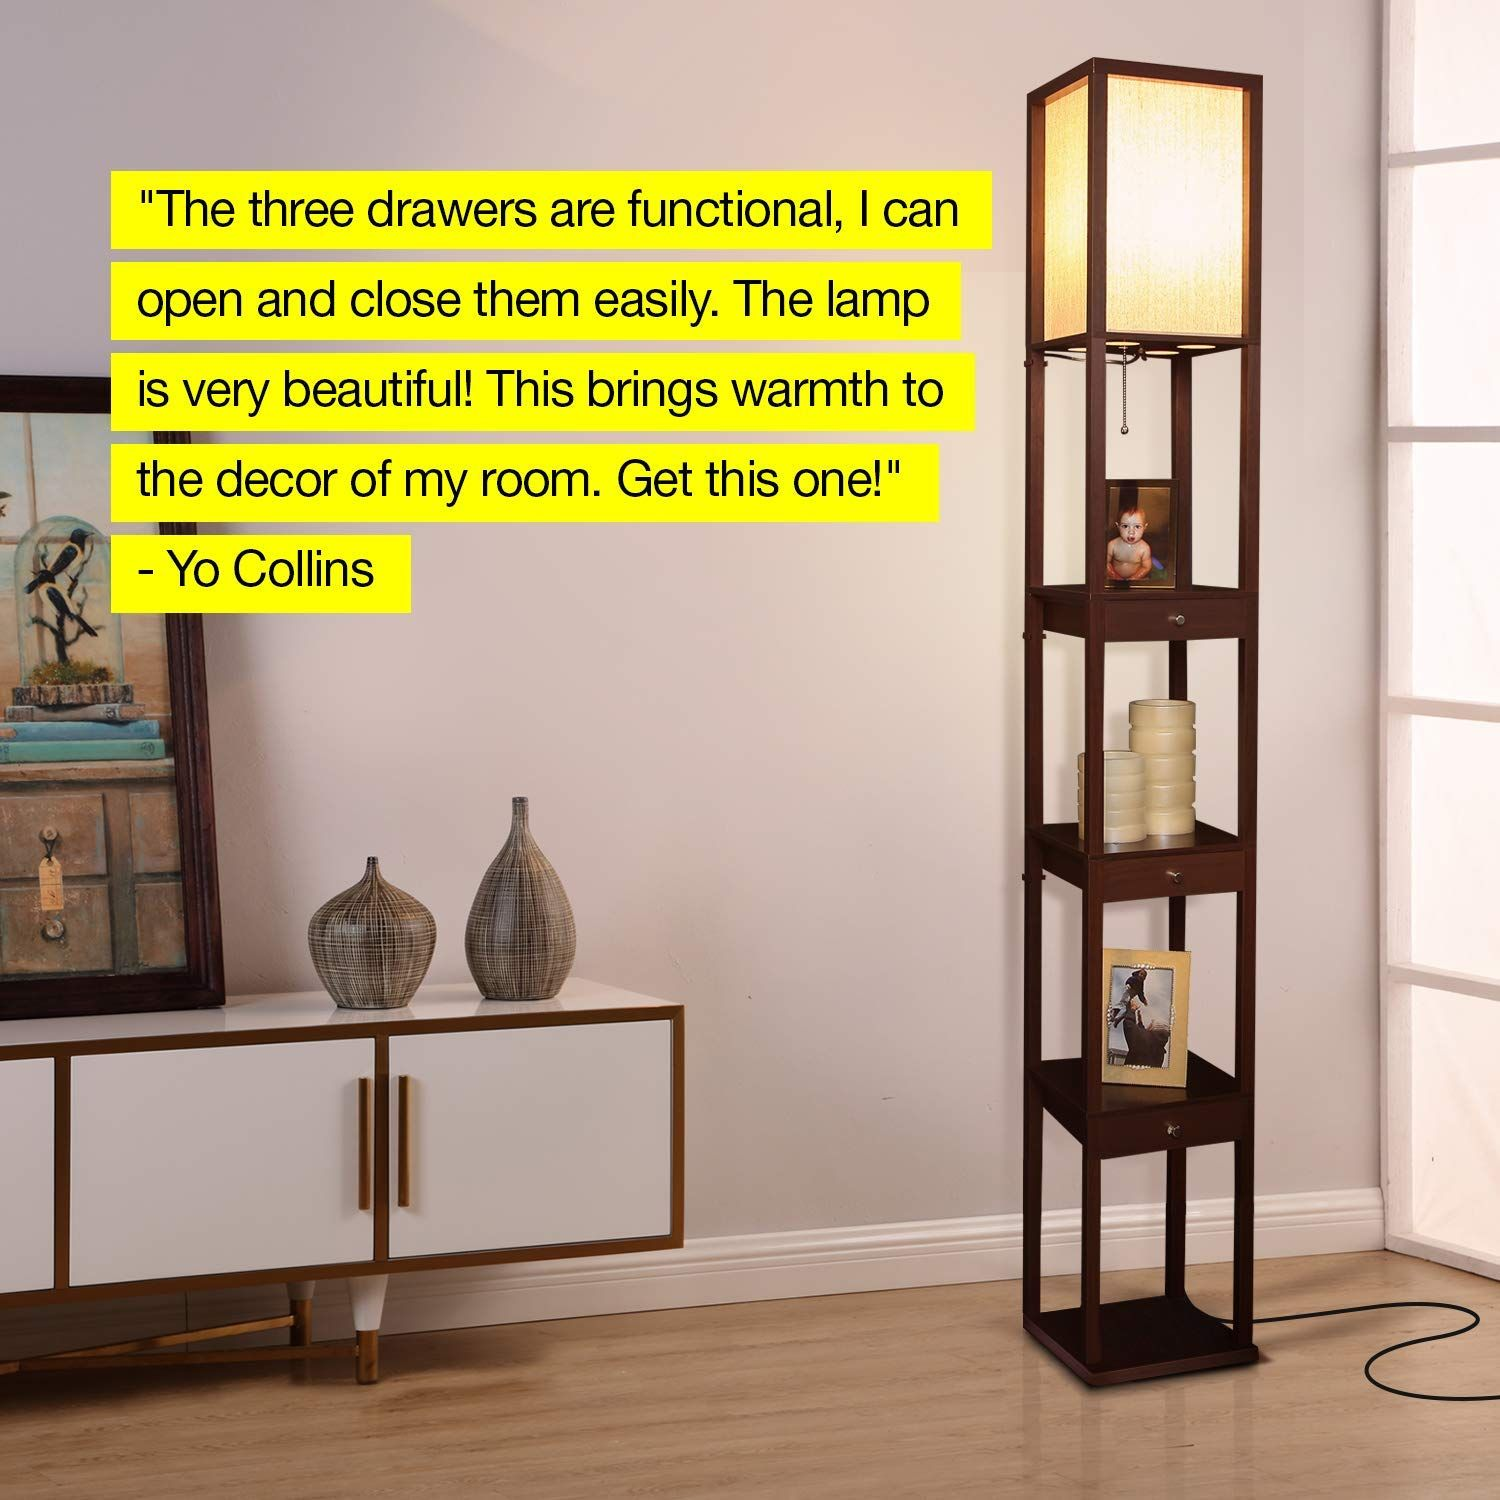 3IN1 WOODEN LAMP, DRAWERS & SHELVES Brightech's tall